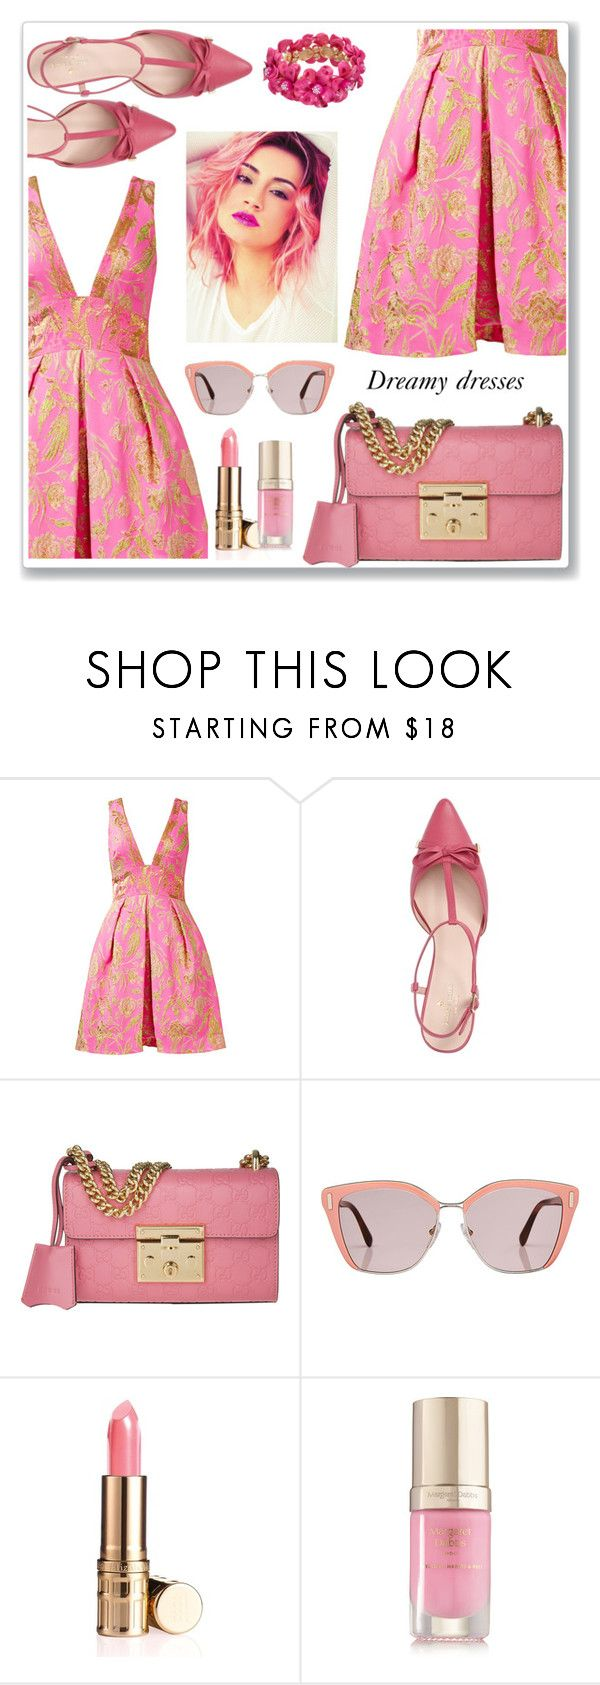 """""""Magenta"""" by paperdolldesigner ❤ liked on Polyvore featuring Notte by Marchesa, Kate Spade, Gucci, Prada, Elizabeth Arden and Margaret Dabbs"""